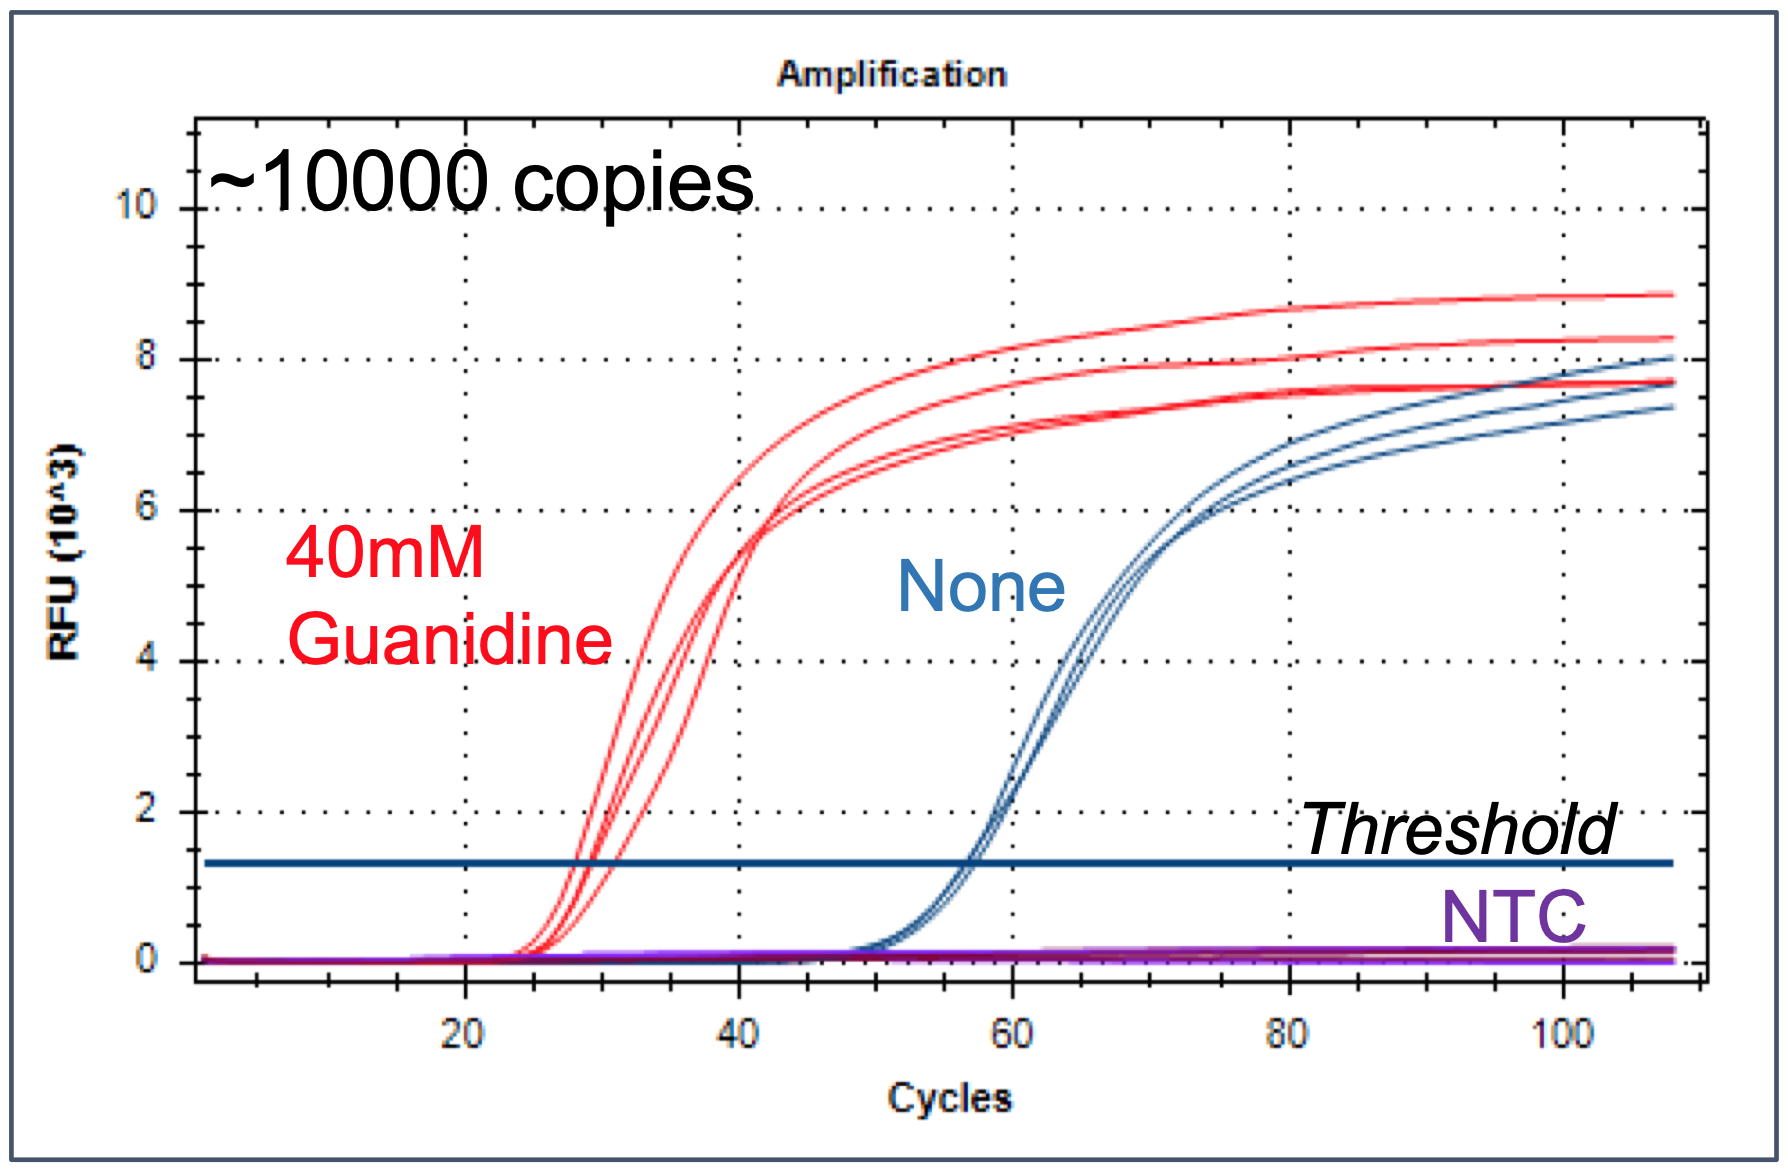 Figure 4. Impact of Guanidine Hydrochloride on detection speed